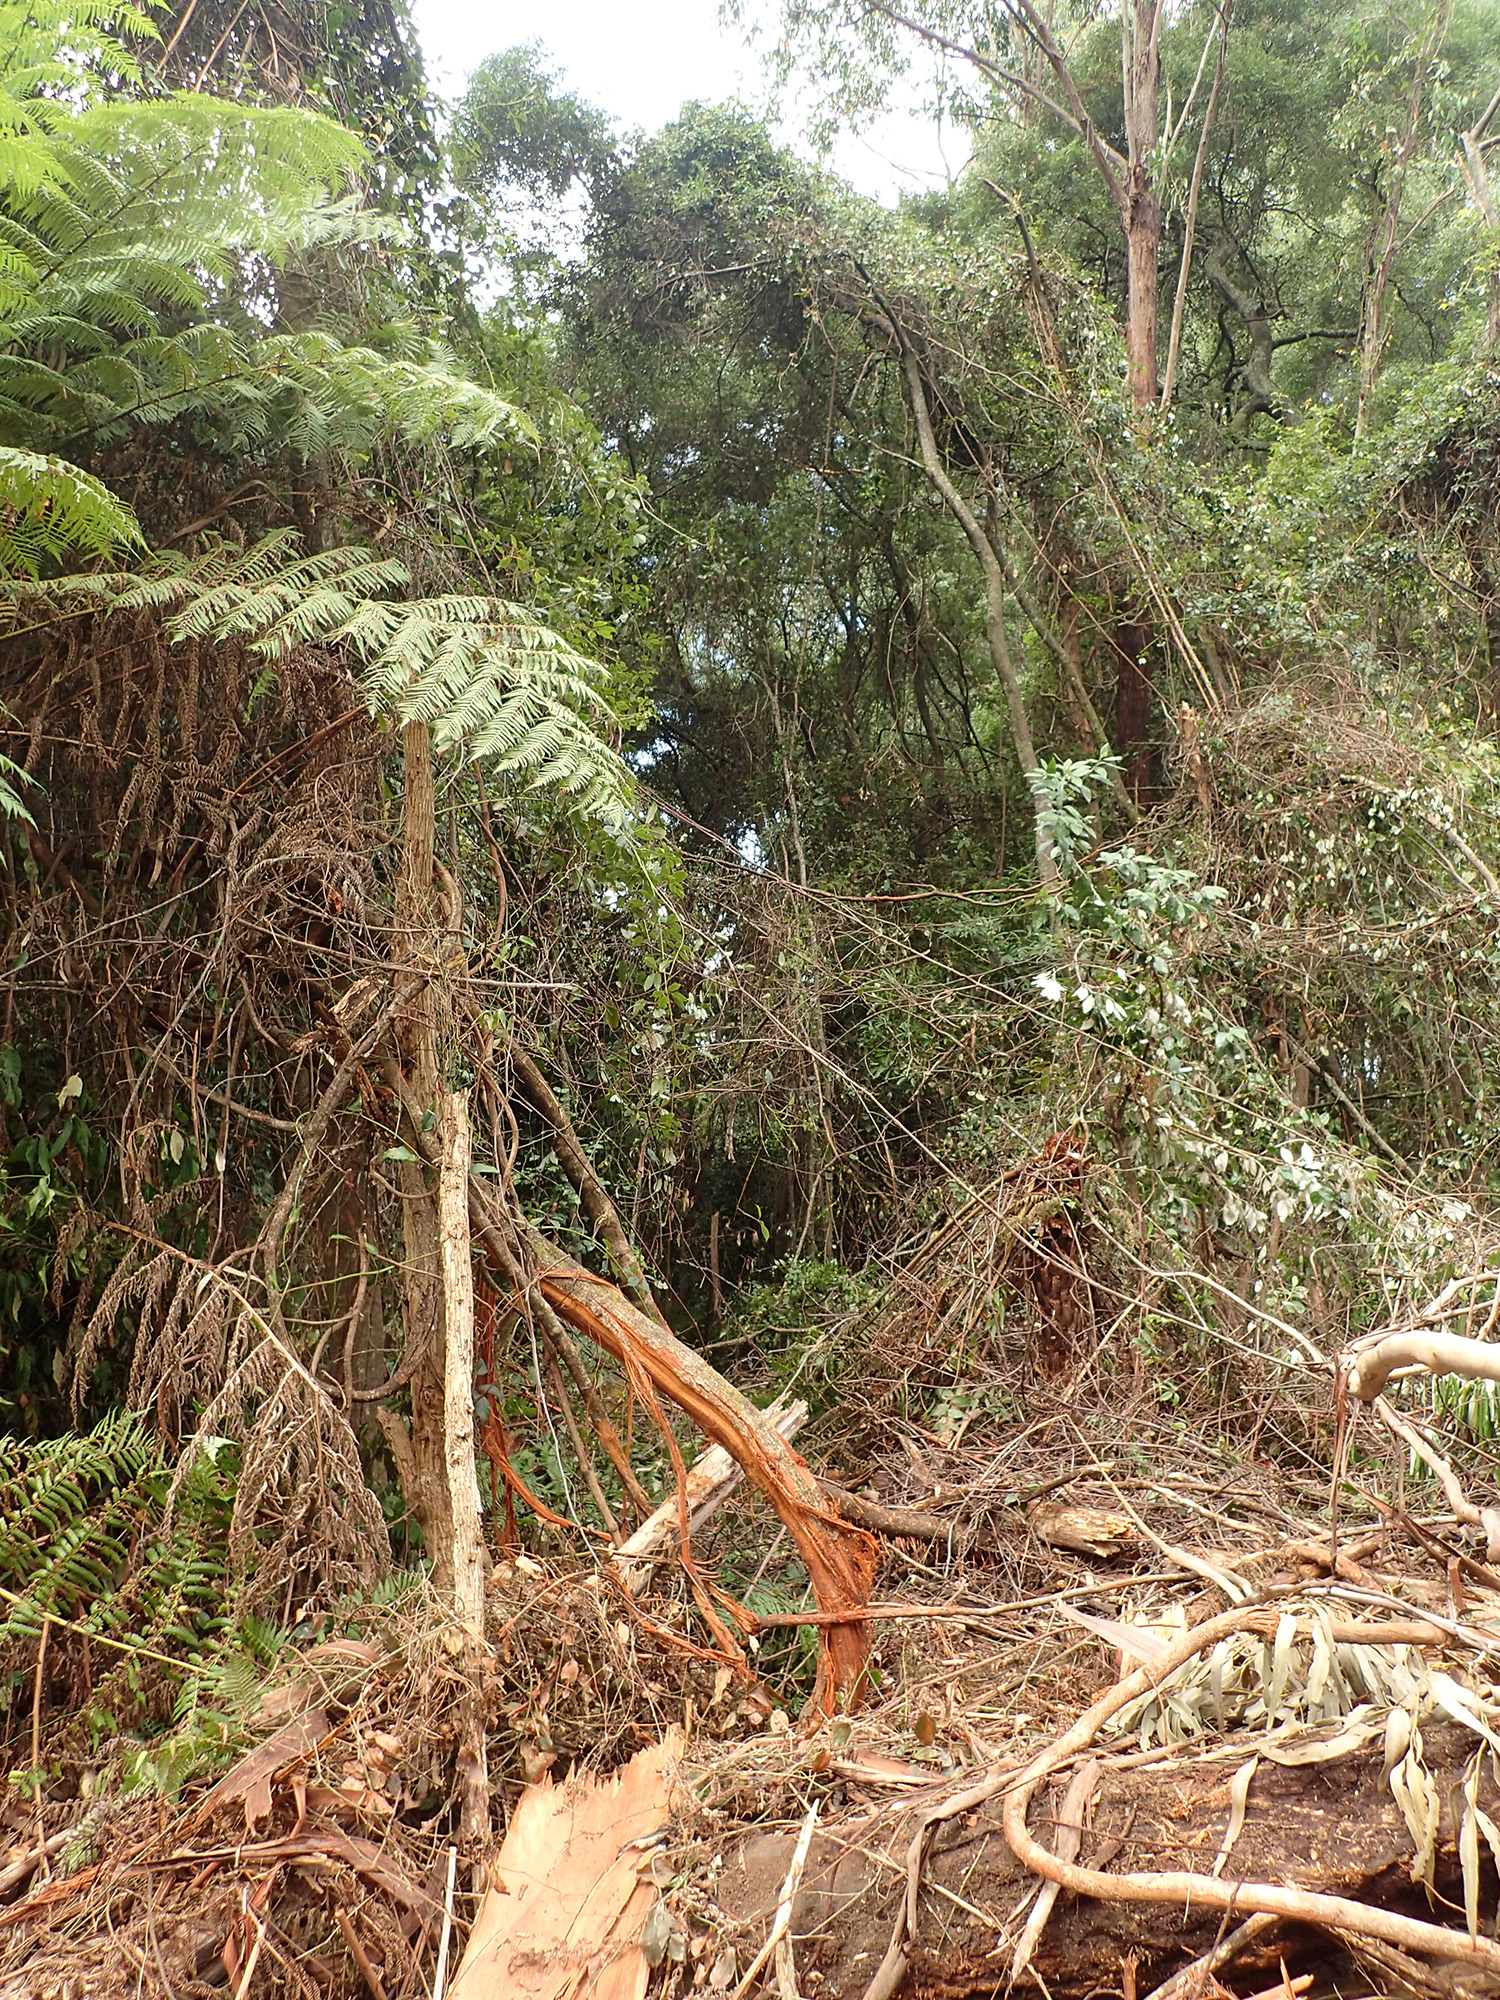 160315_-_Damaged_Rainforest_Canopy_Species_within_coupe_832-502-0017.jpg